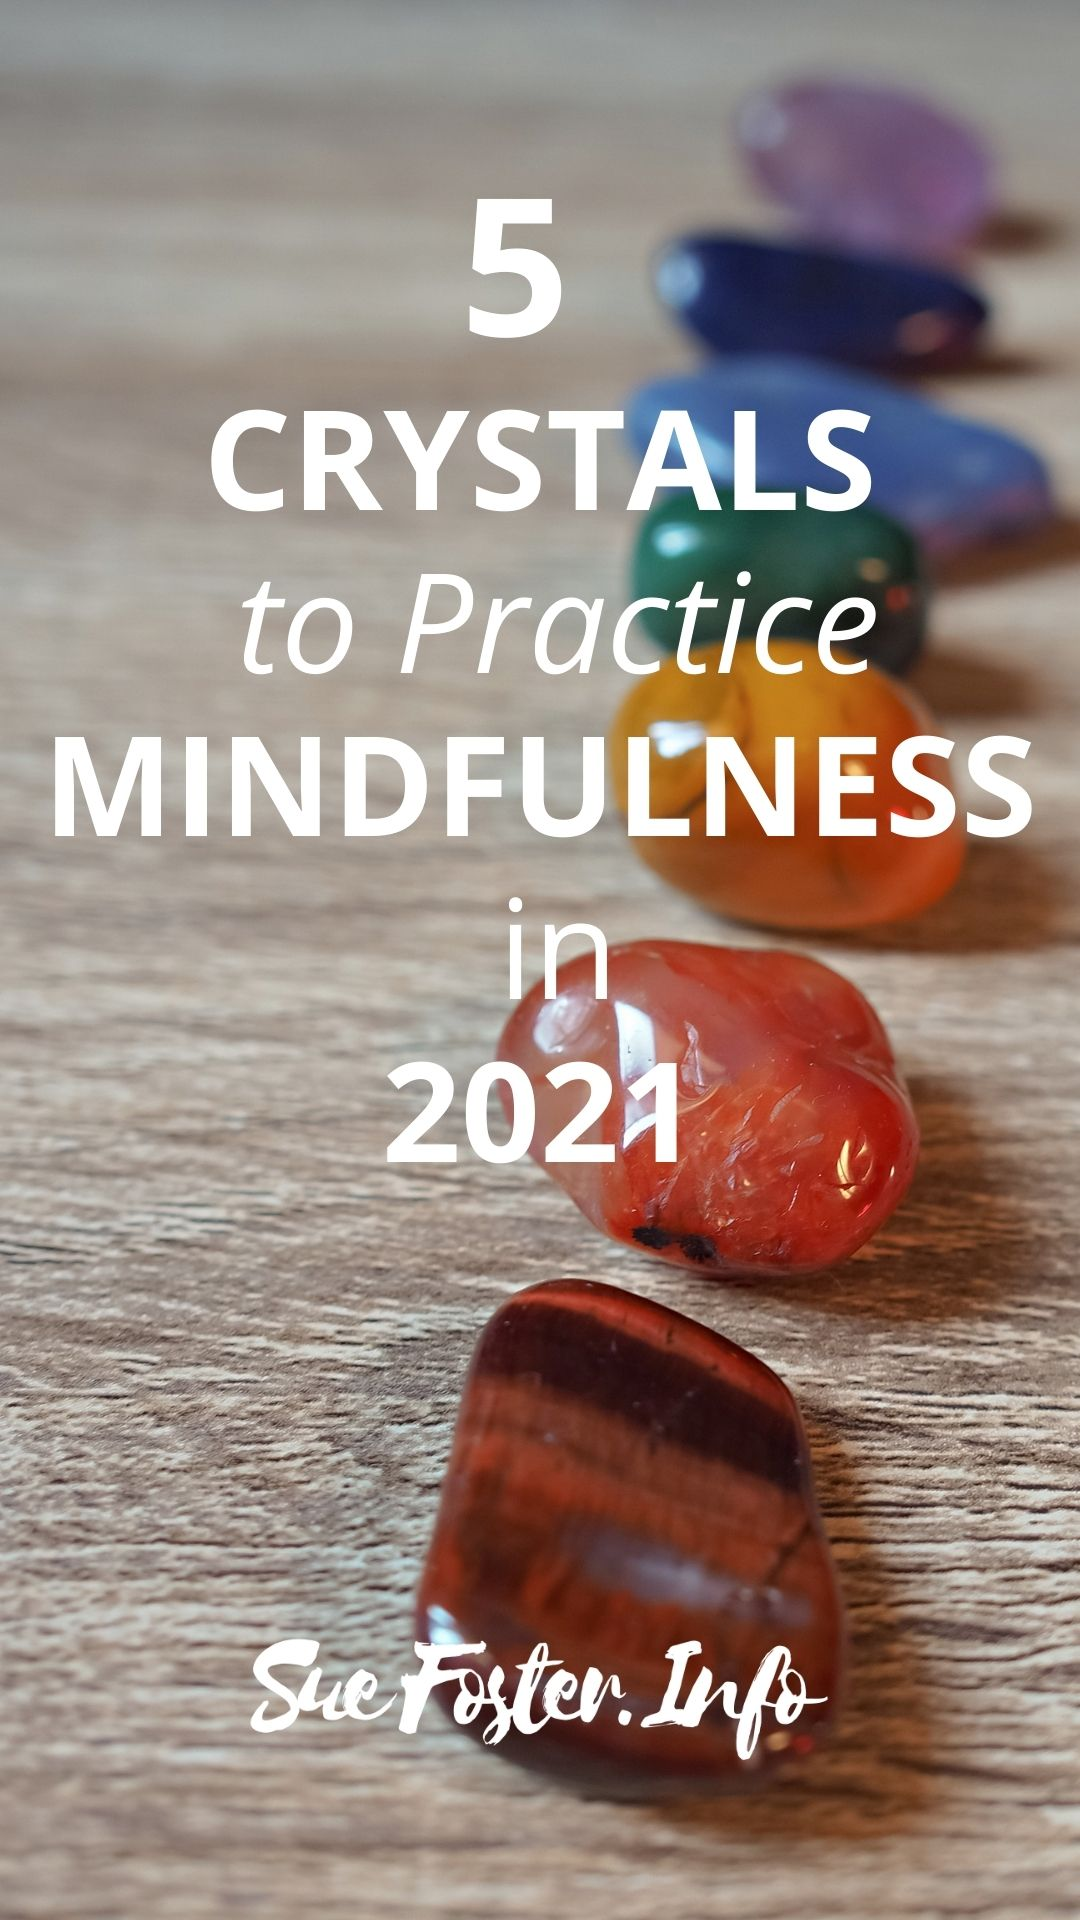 5 Mindfulness crystals that you can use to tackle the growing stress in this time of the pandemic.